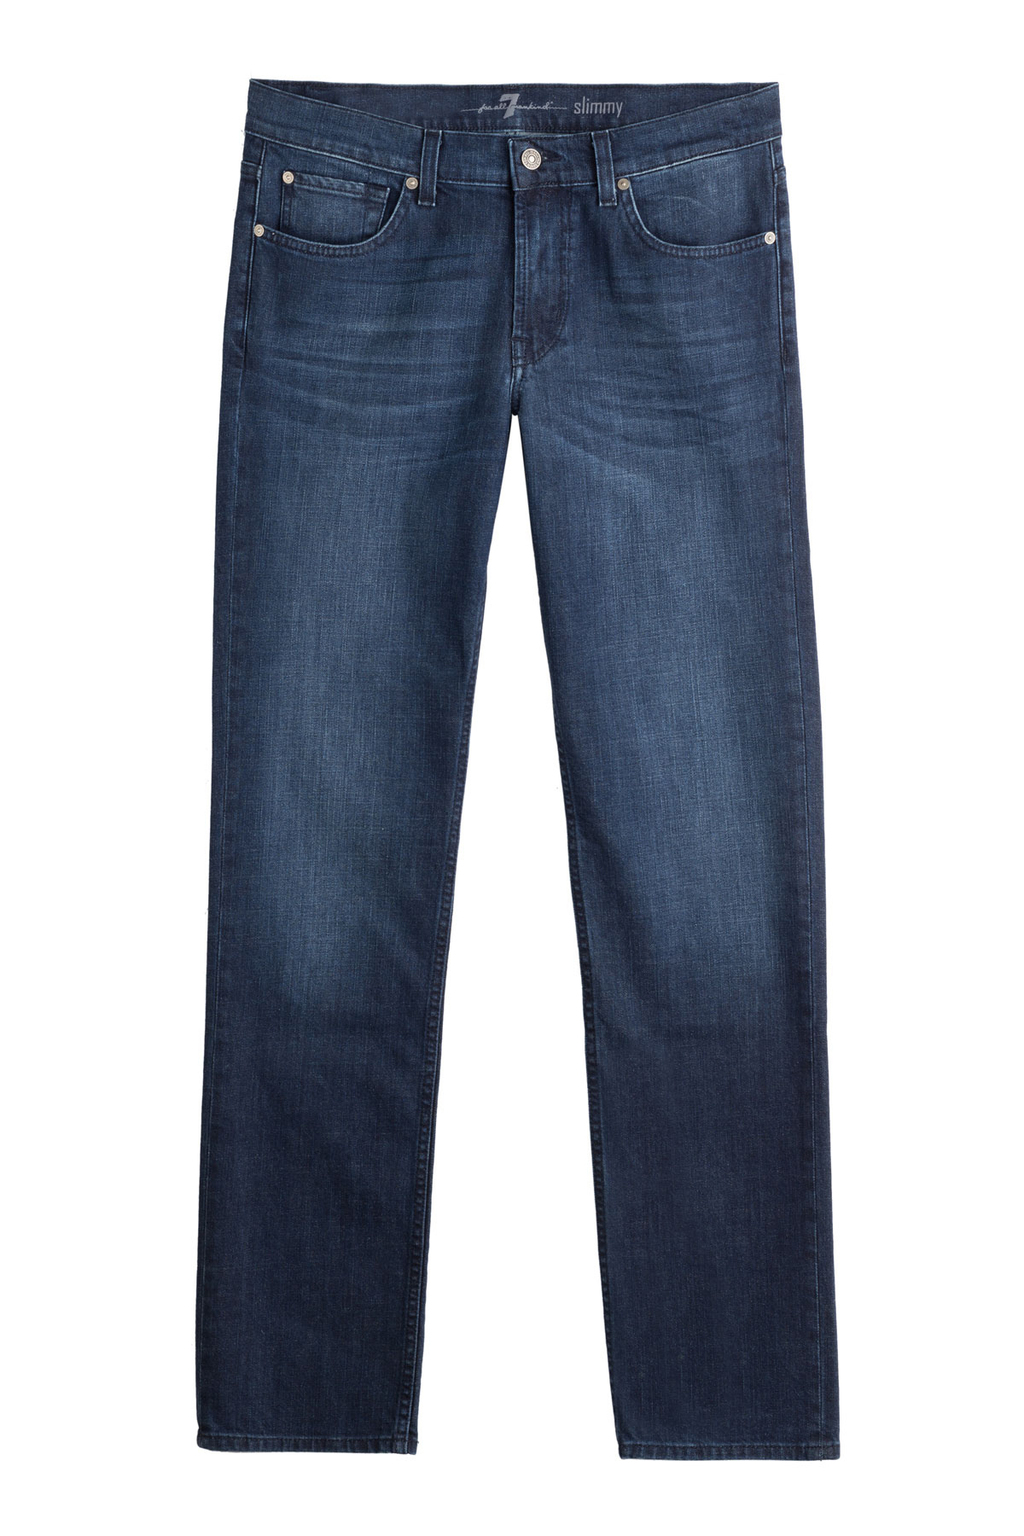 Straight Leg Jeans - style: straight leg; length: standard; pattern: plain; pocket detail: traditional 5 pocket; waist: mid/regular rise; predominant colour: navy; occasions: casual; fibres: cotton - stretch; jeans detail: shading down centre of thigh; texture group: denim; pattern type: fabric; season: s/s 2016; wardrobe: basic